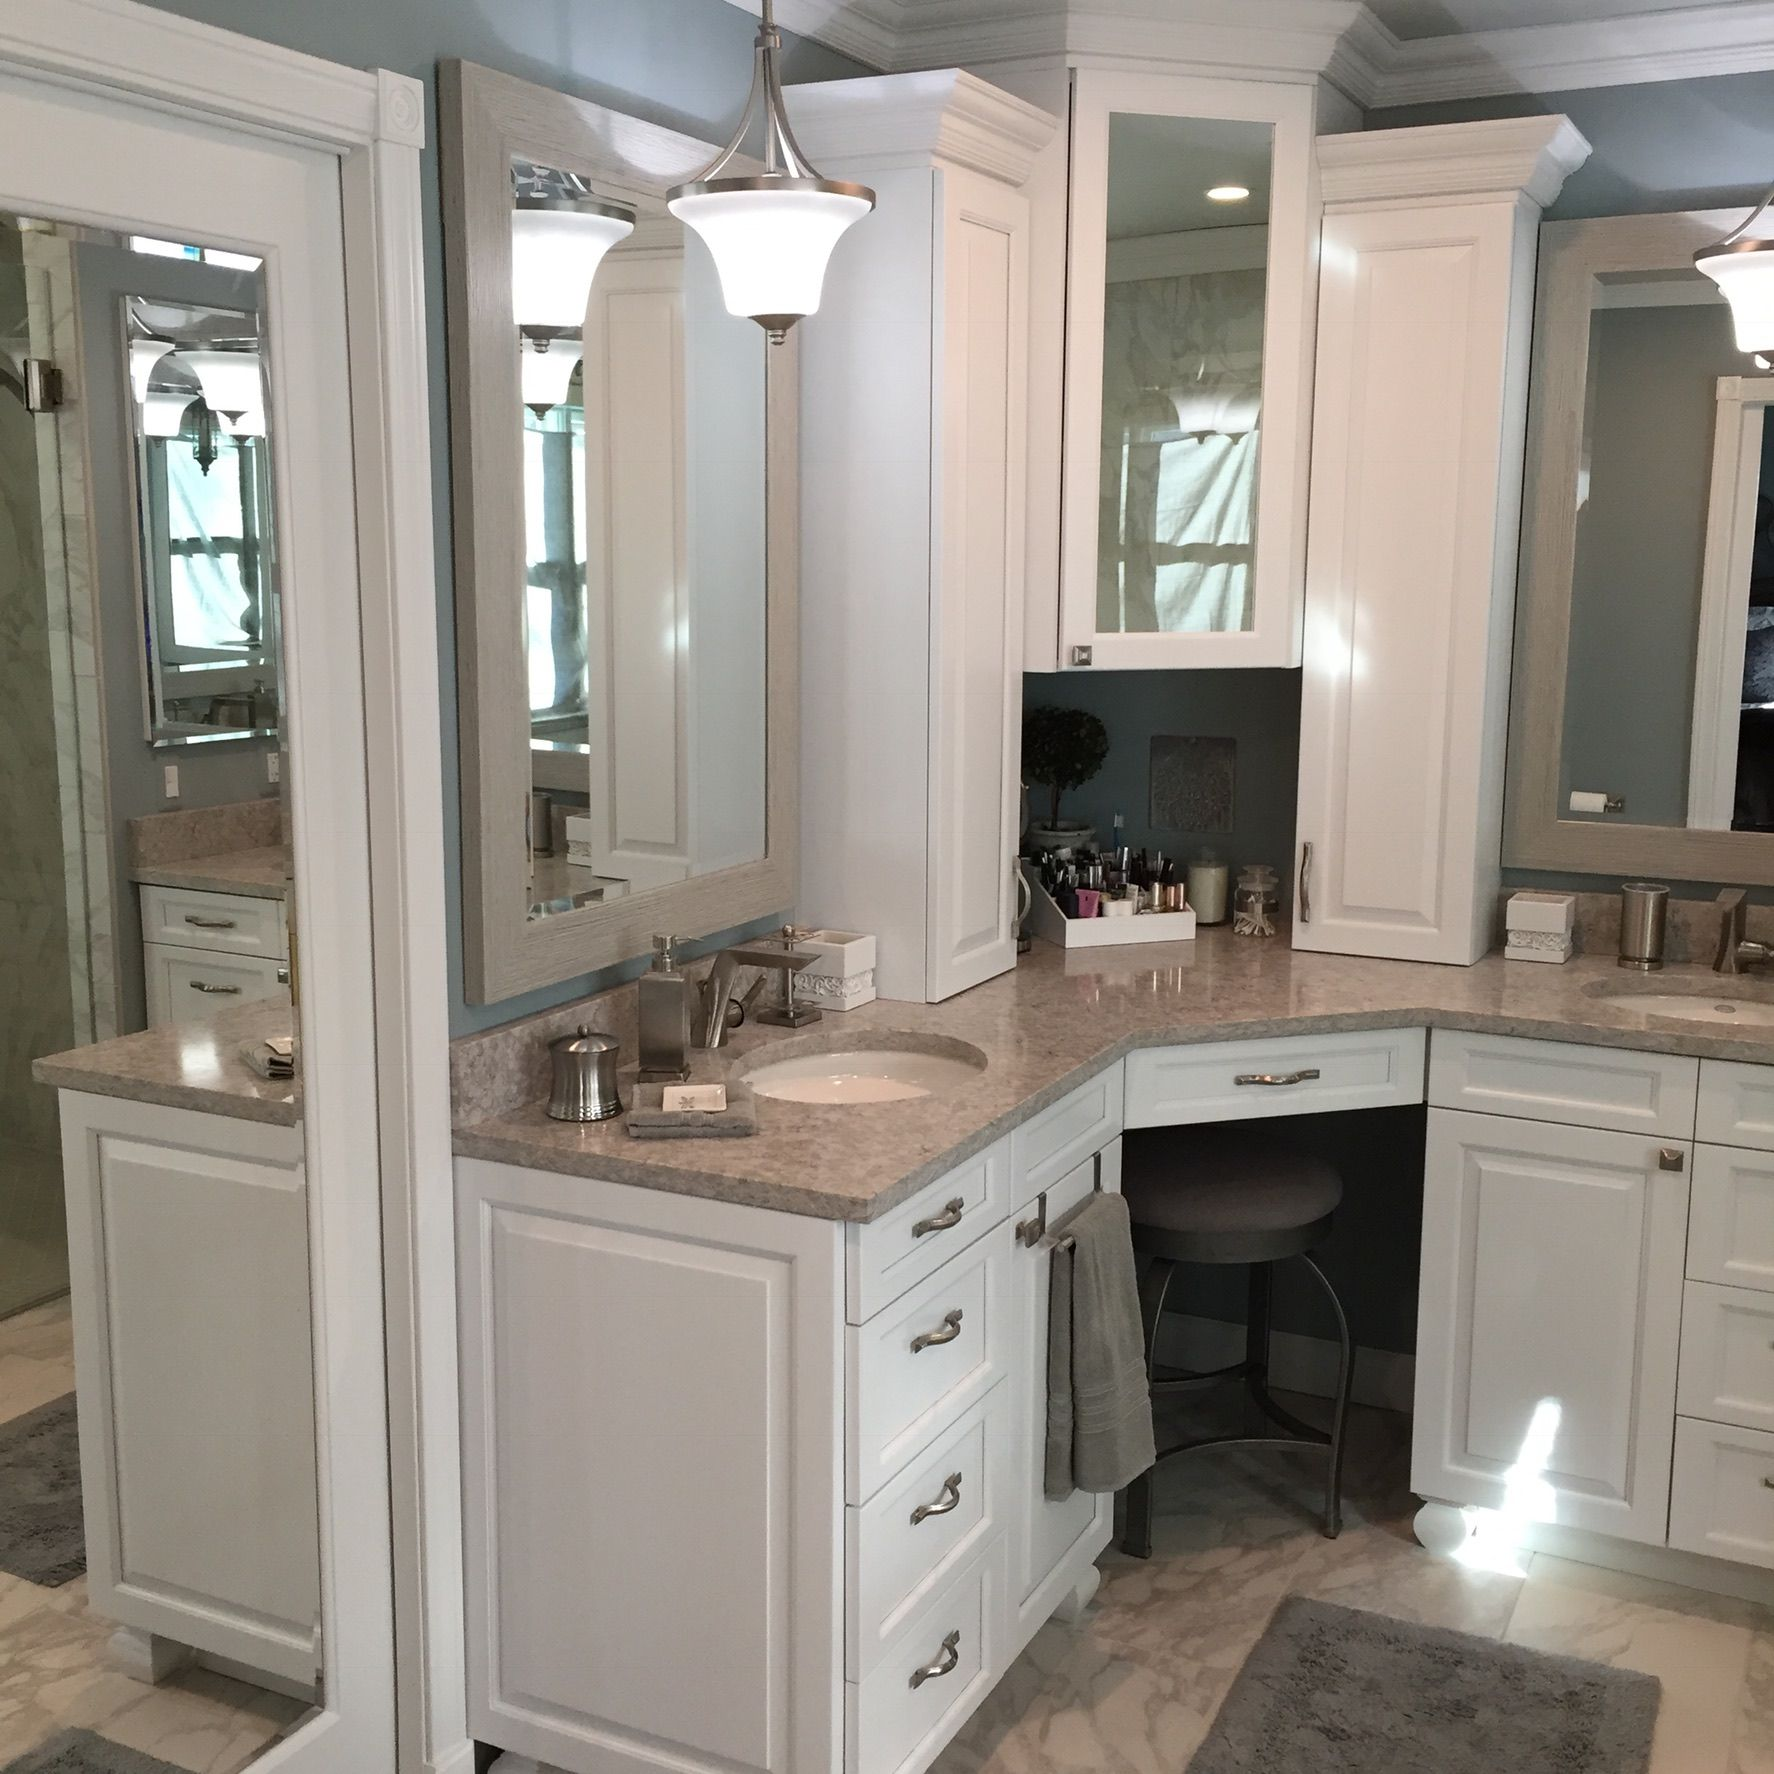 We Went With A His Her Corner Vanity And Love It Corner Bathroom Vanity Master Bathroom Vanity Bathroom Interior Design